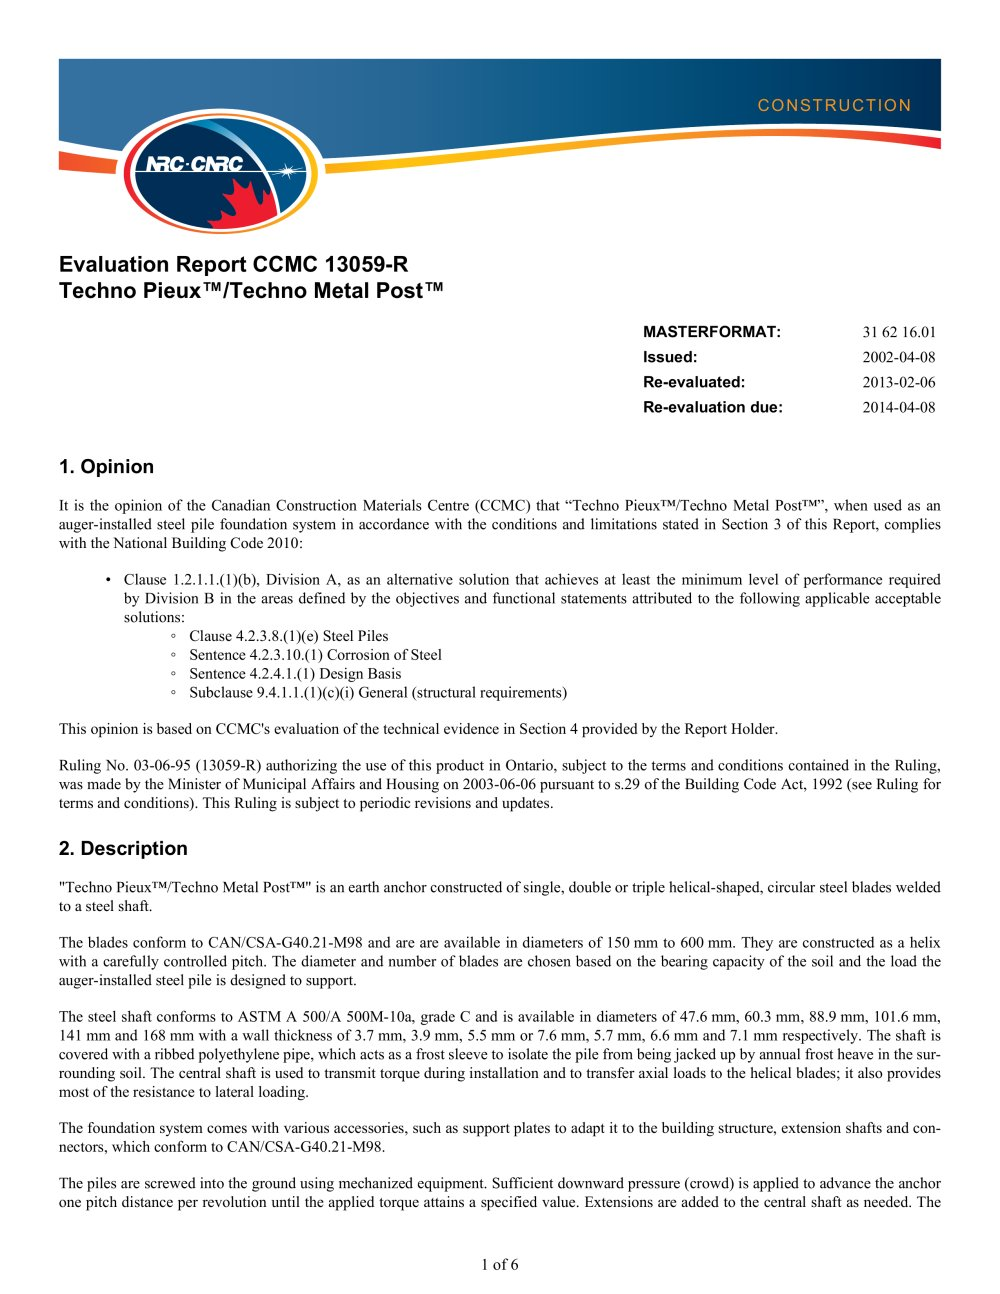 Techno metal post nrc certification techno pieux inc pdf techno metal post nrc certification 1 6 pages 1betcityfo Image collections